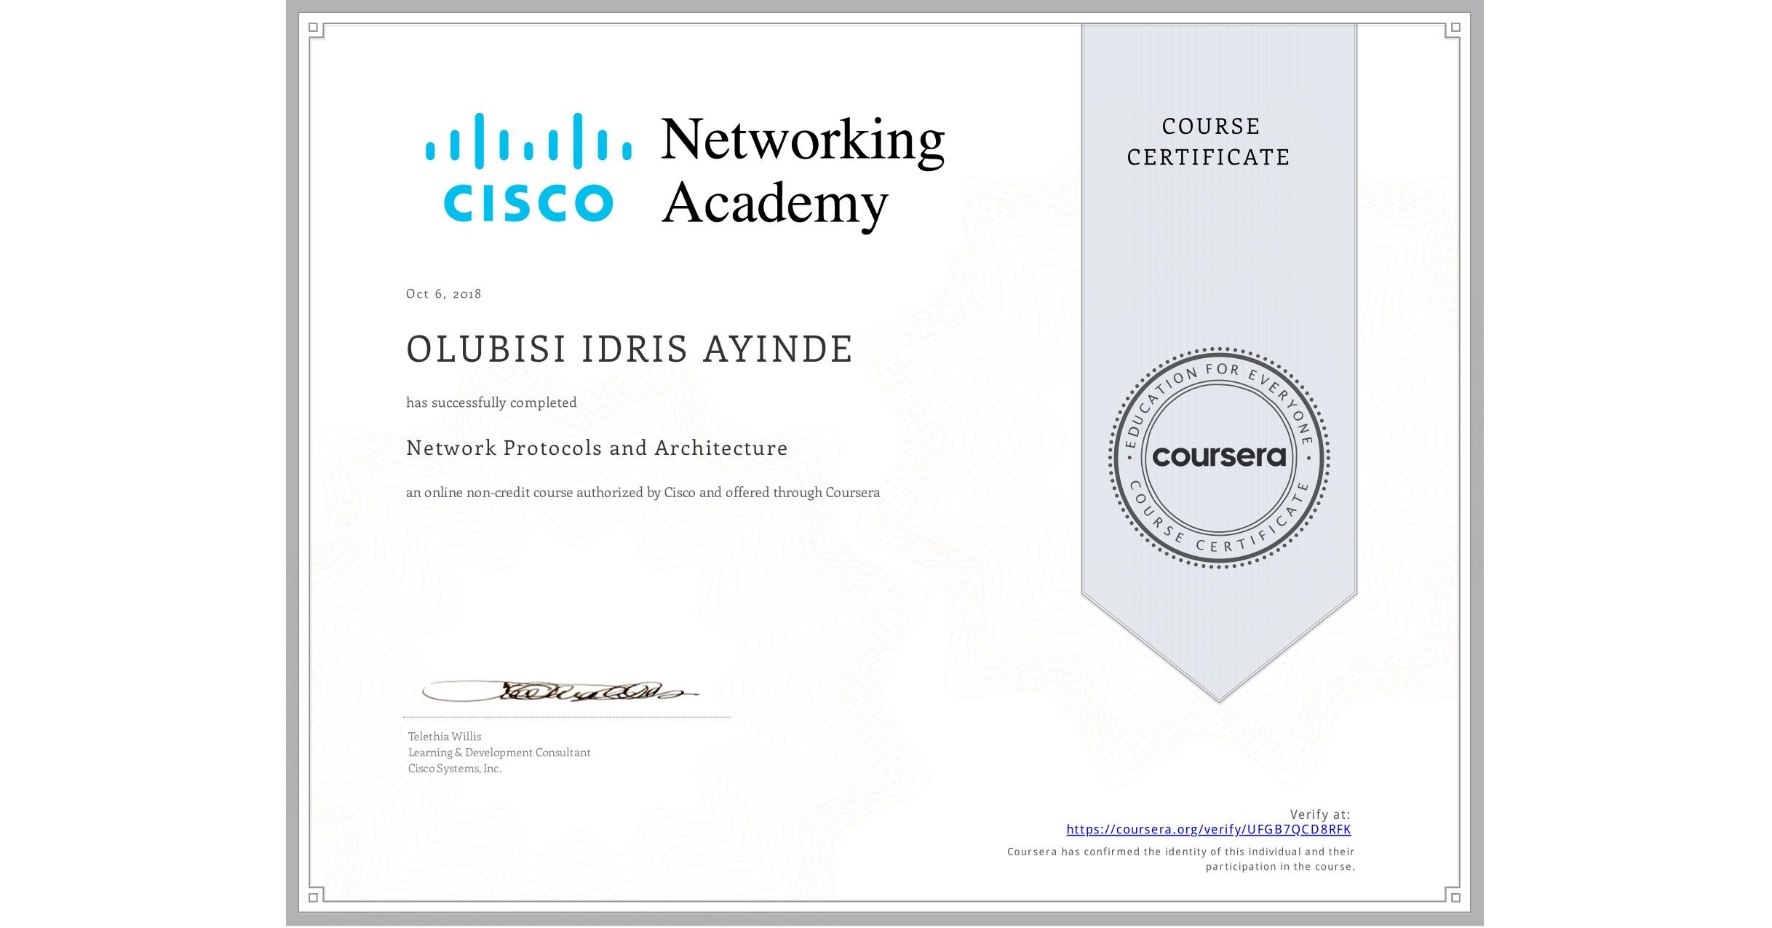 View certificate for OLUBISI IDRIS AYINDE, Network Protocols and Architecture, an online non-credit course authorized by Cisco and offered through Coursera